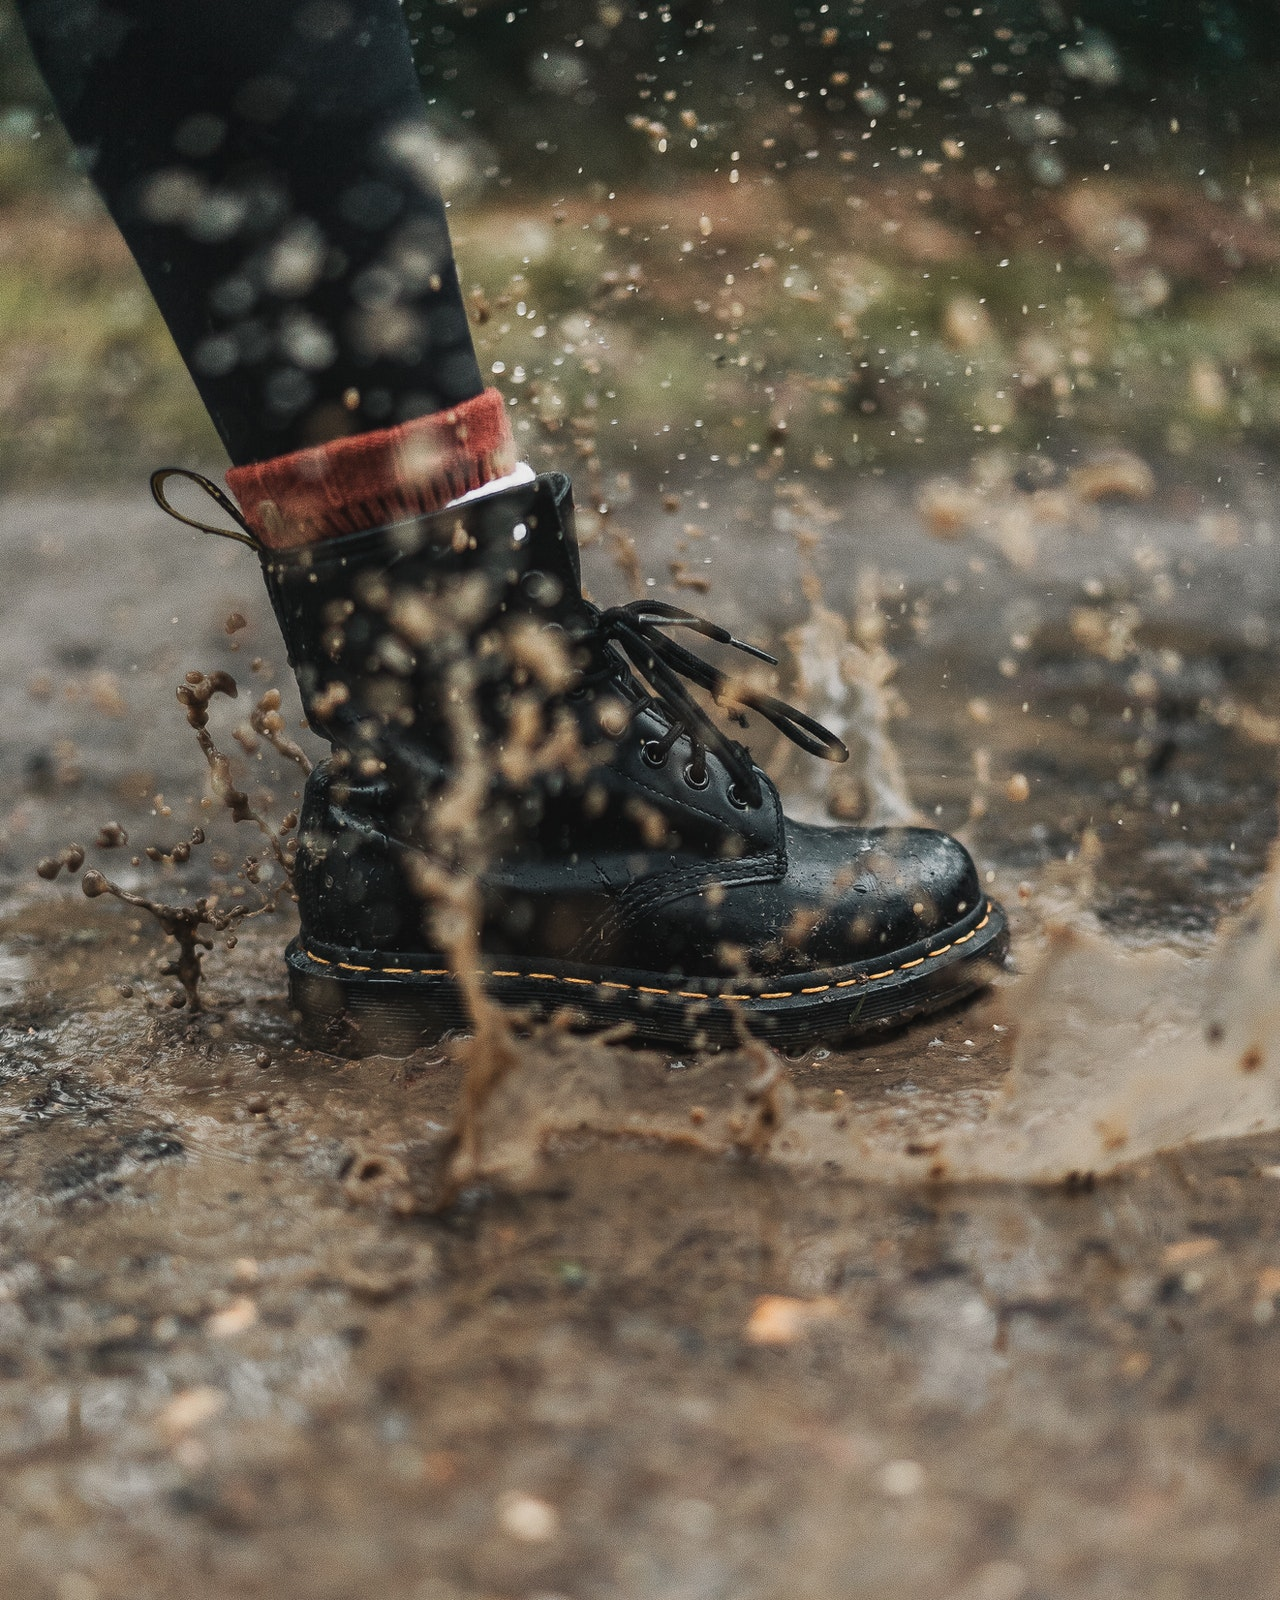 Muddy-ing up Our Vision